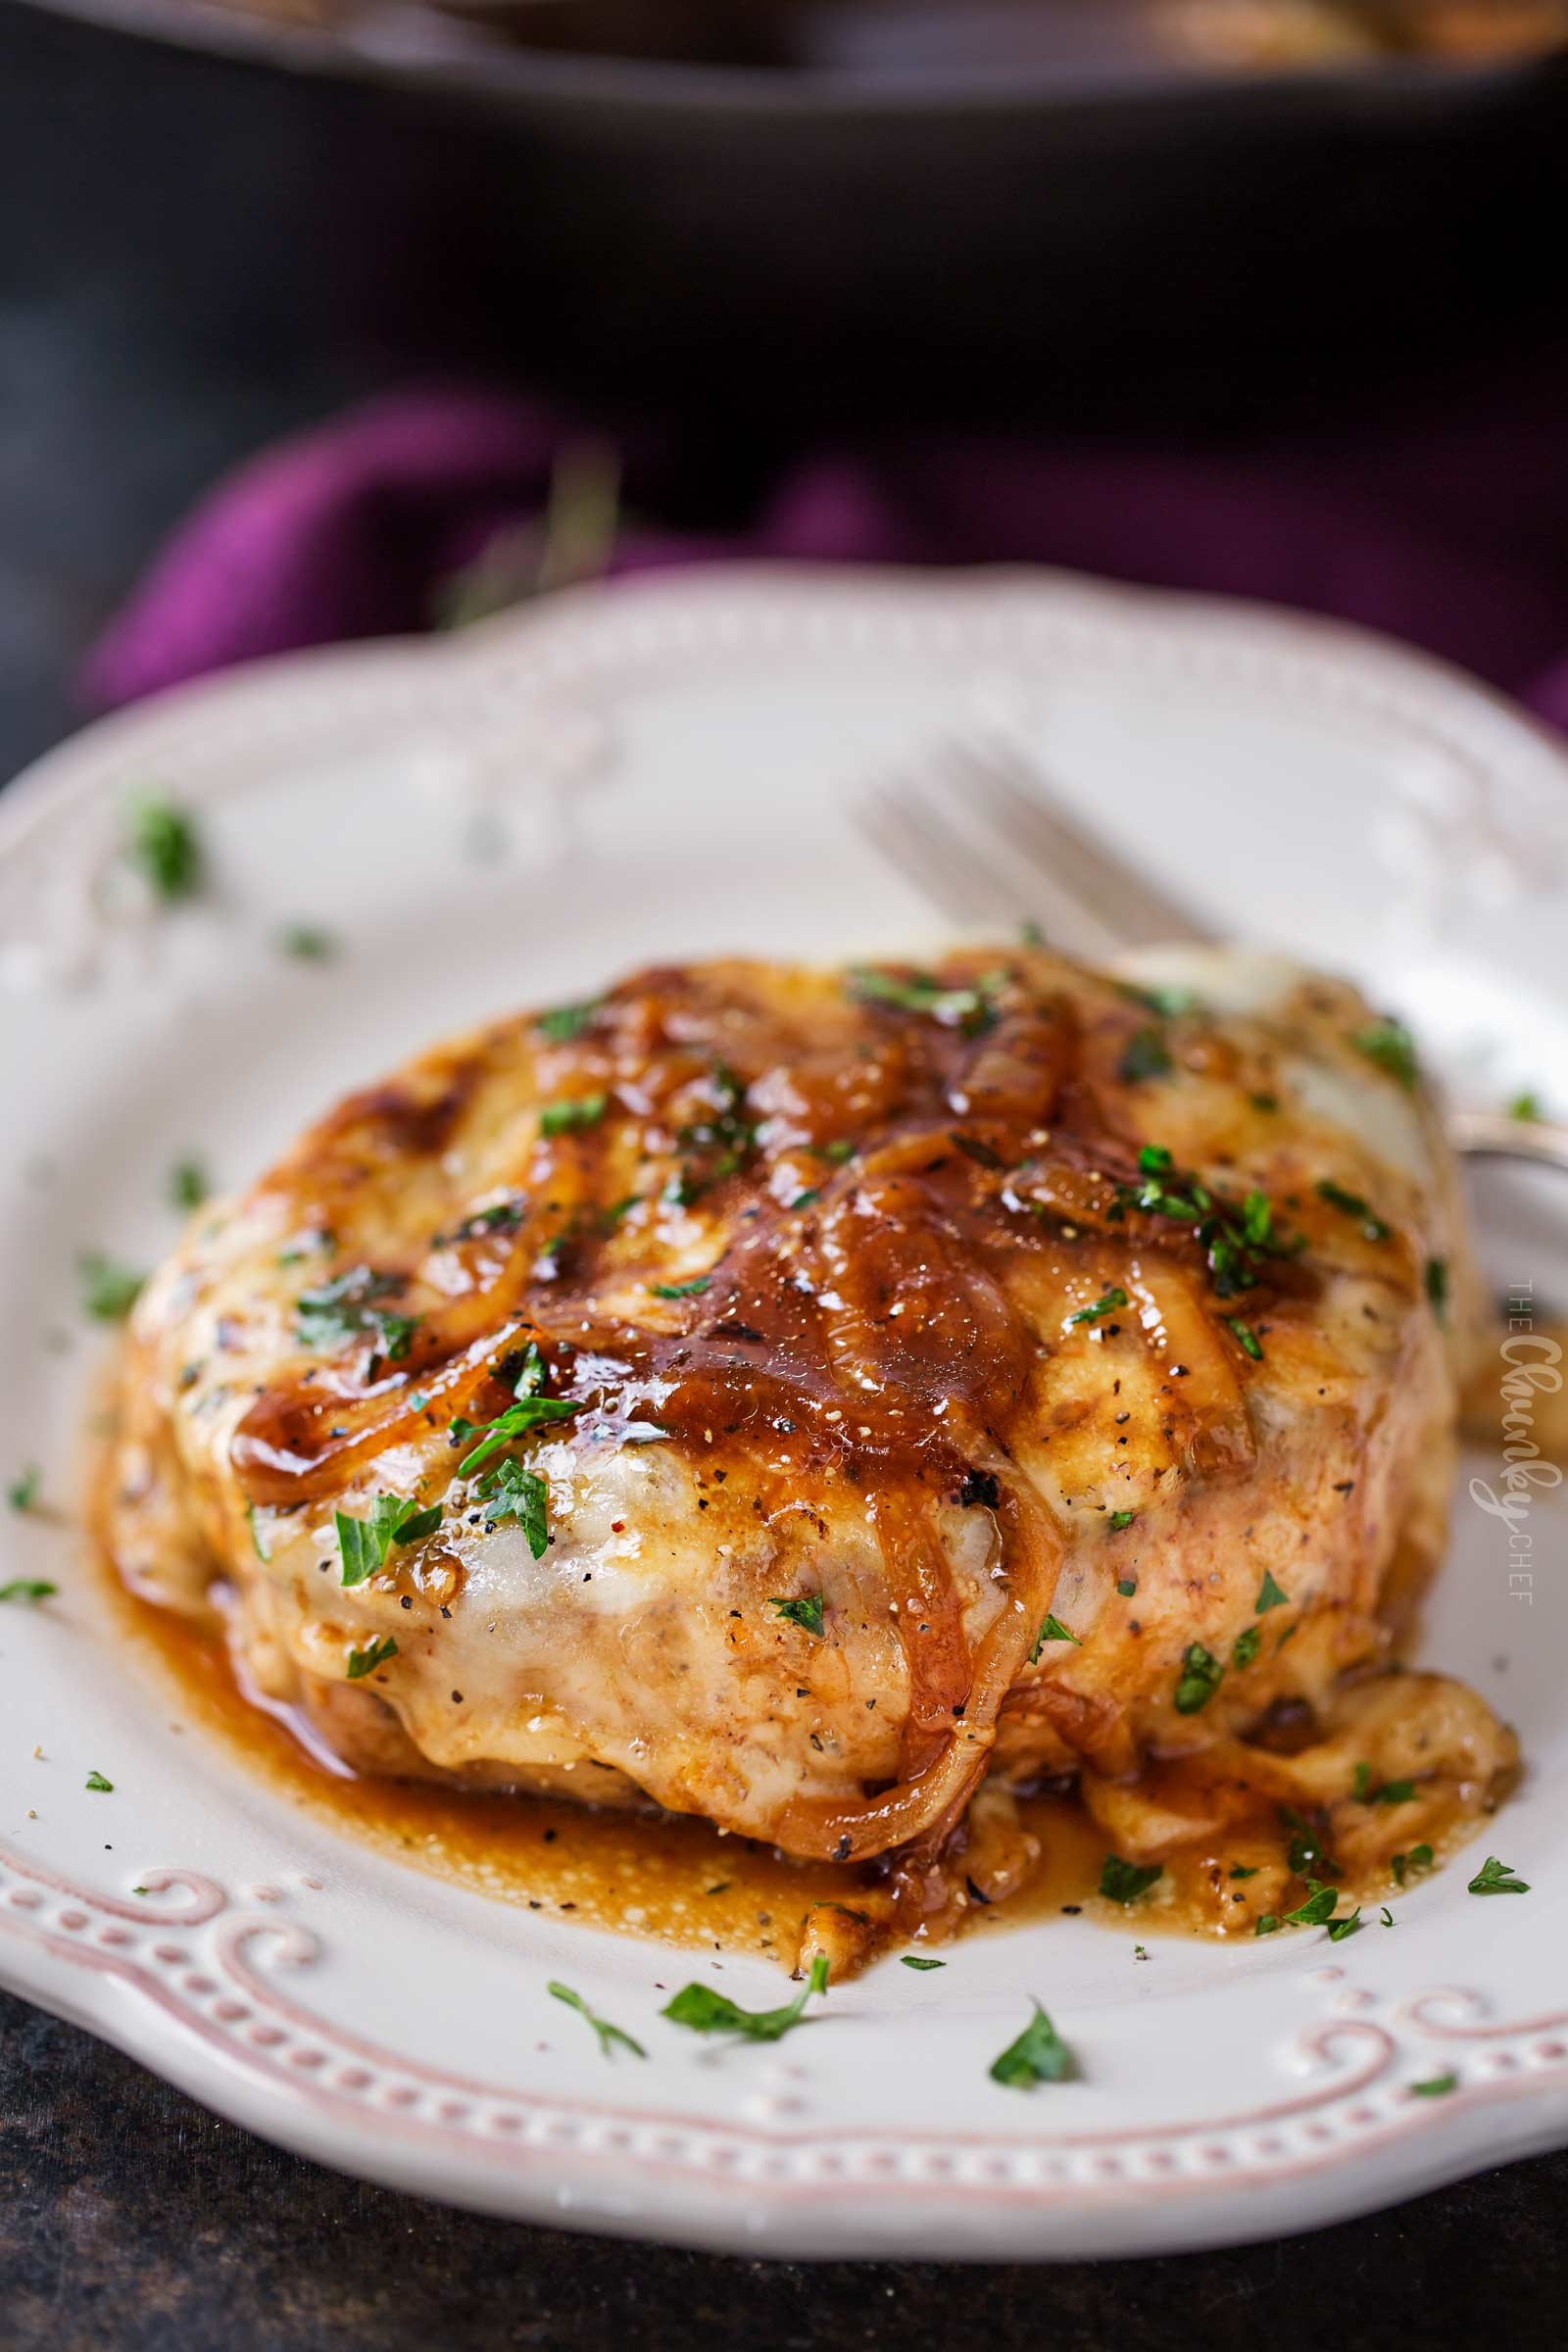 Smothered pork chop on plate